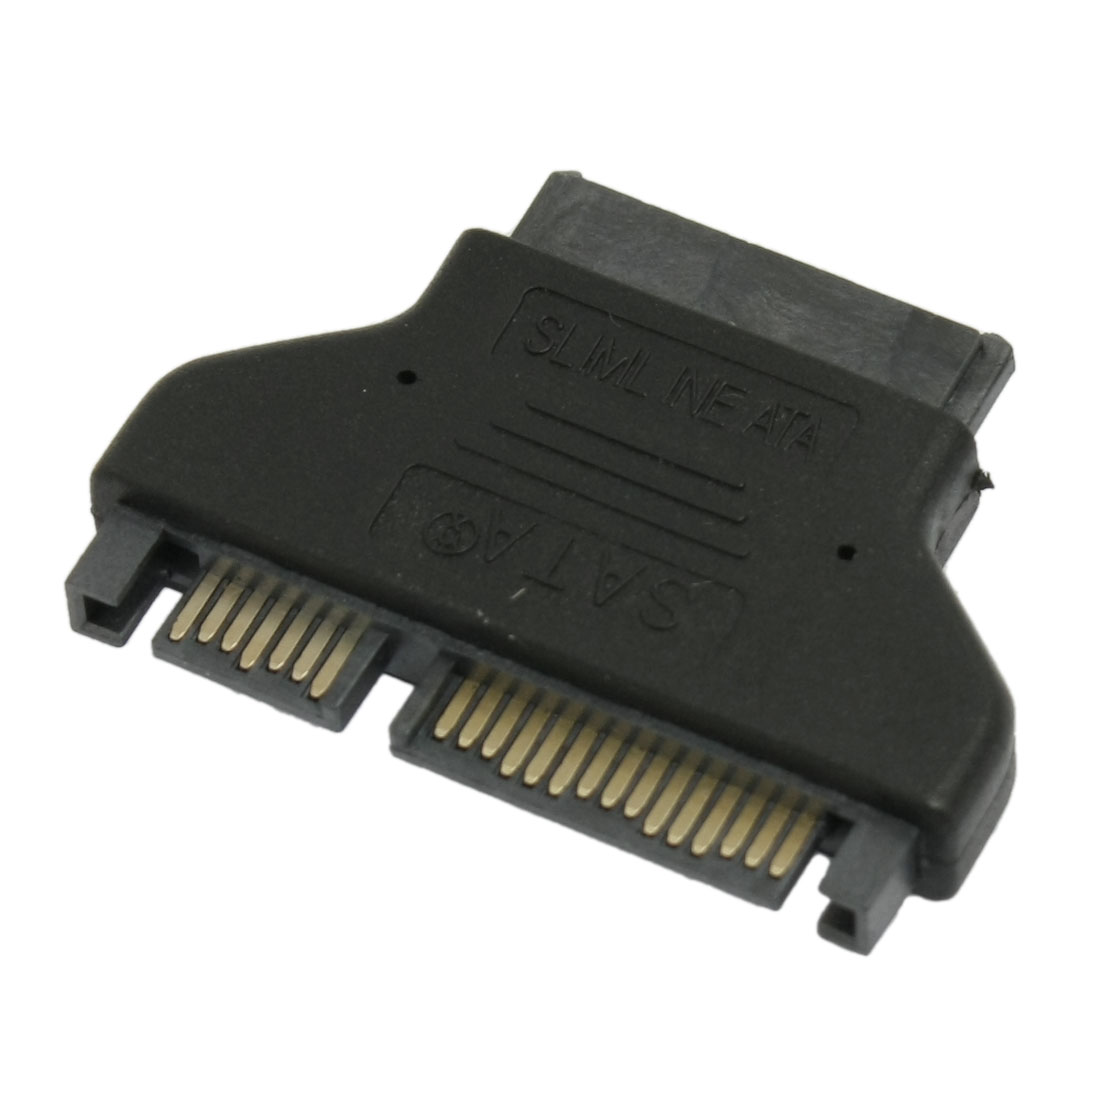 SATA 7+15 Pin Male Plug to Mini SATA 6+7P Female Jack Convertor Adapter